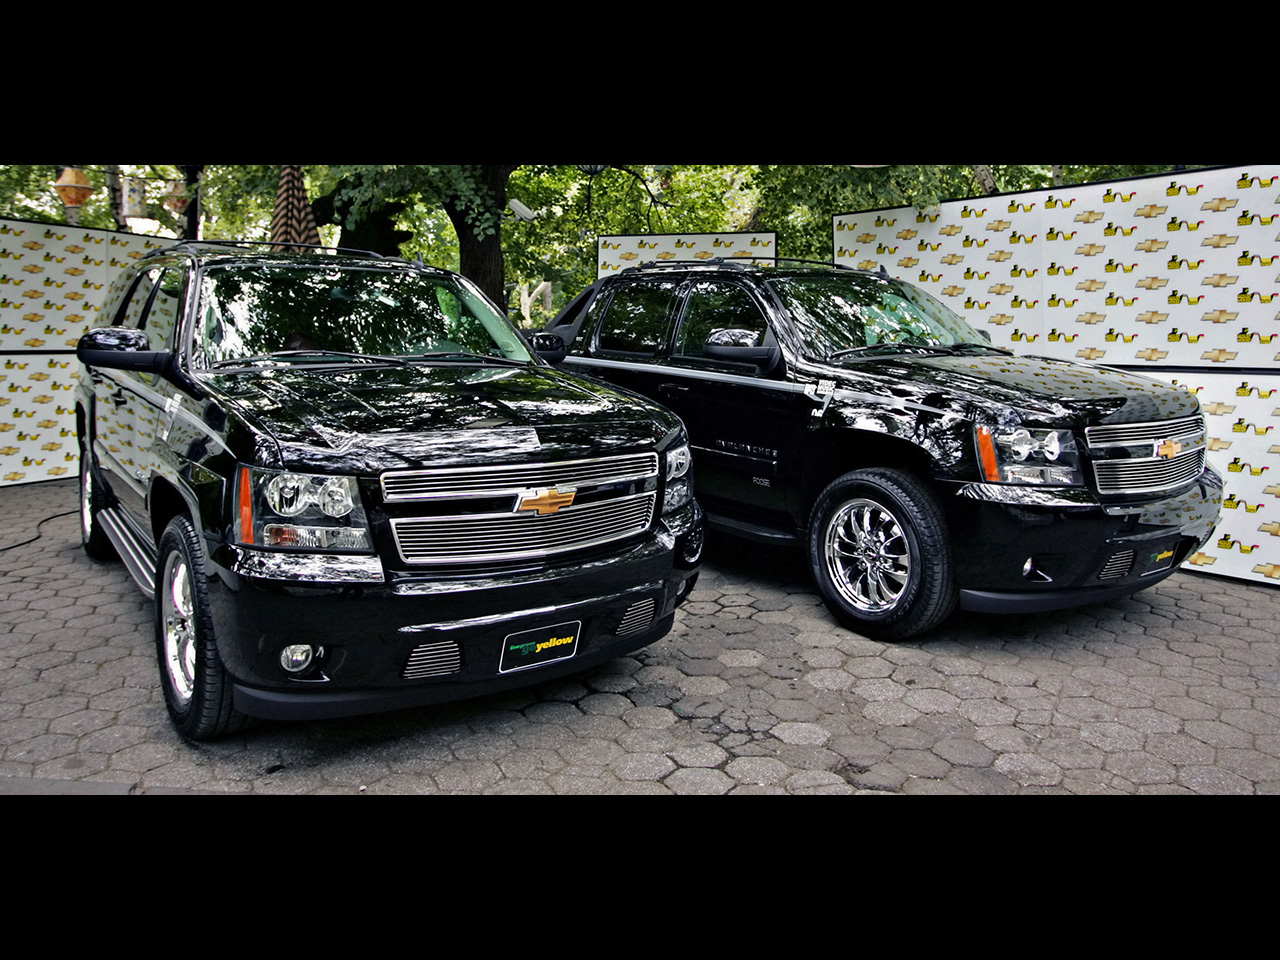 Chevrolet tahoe 2007 photo - 4